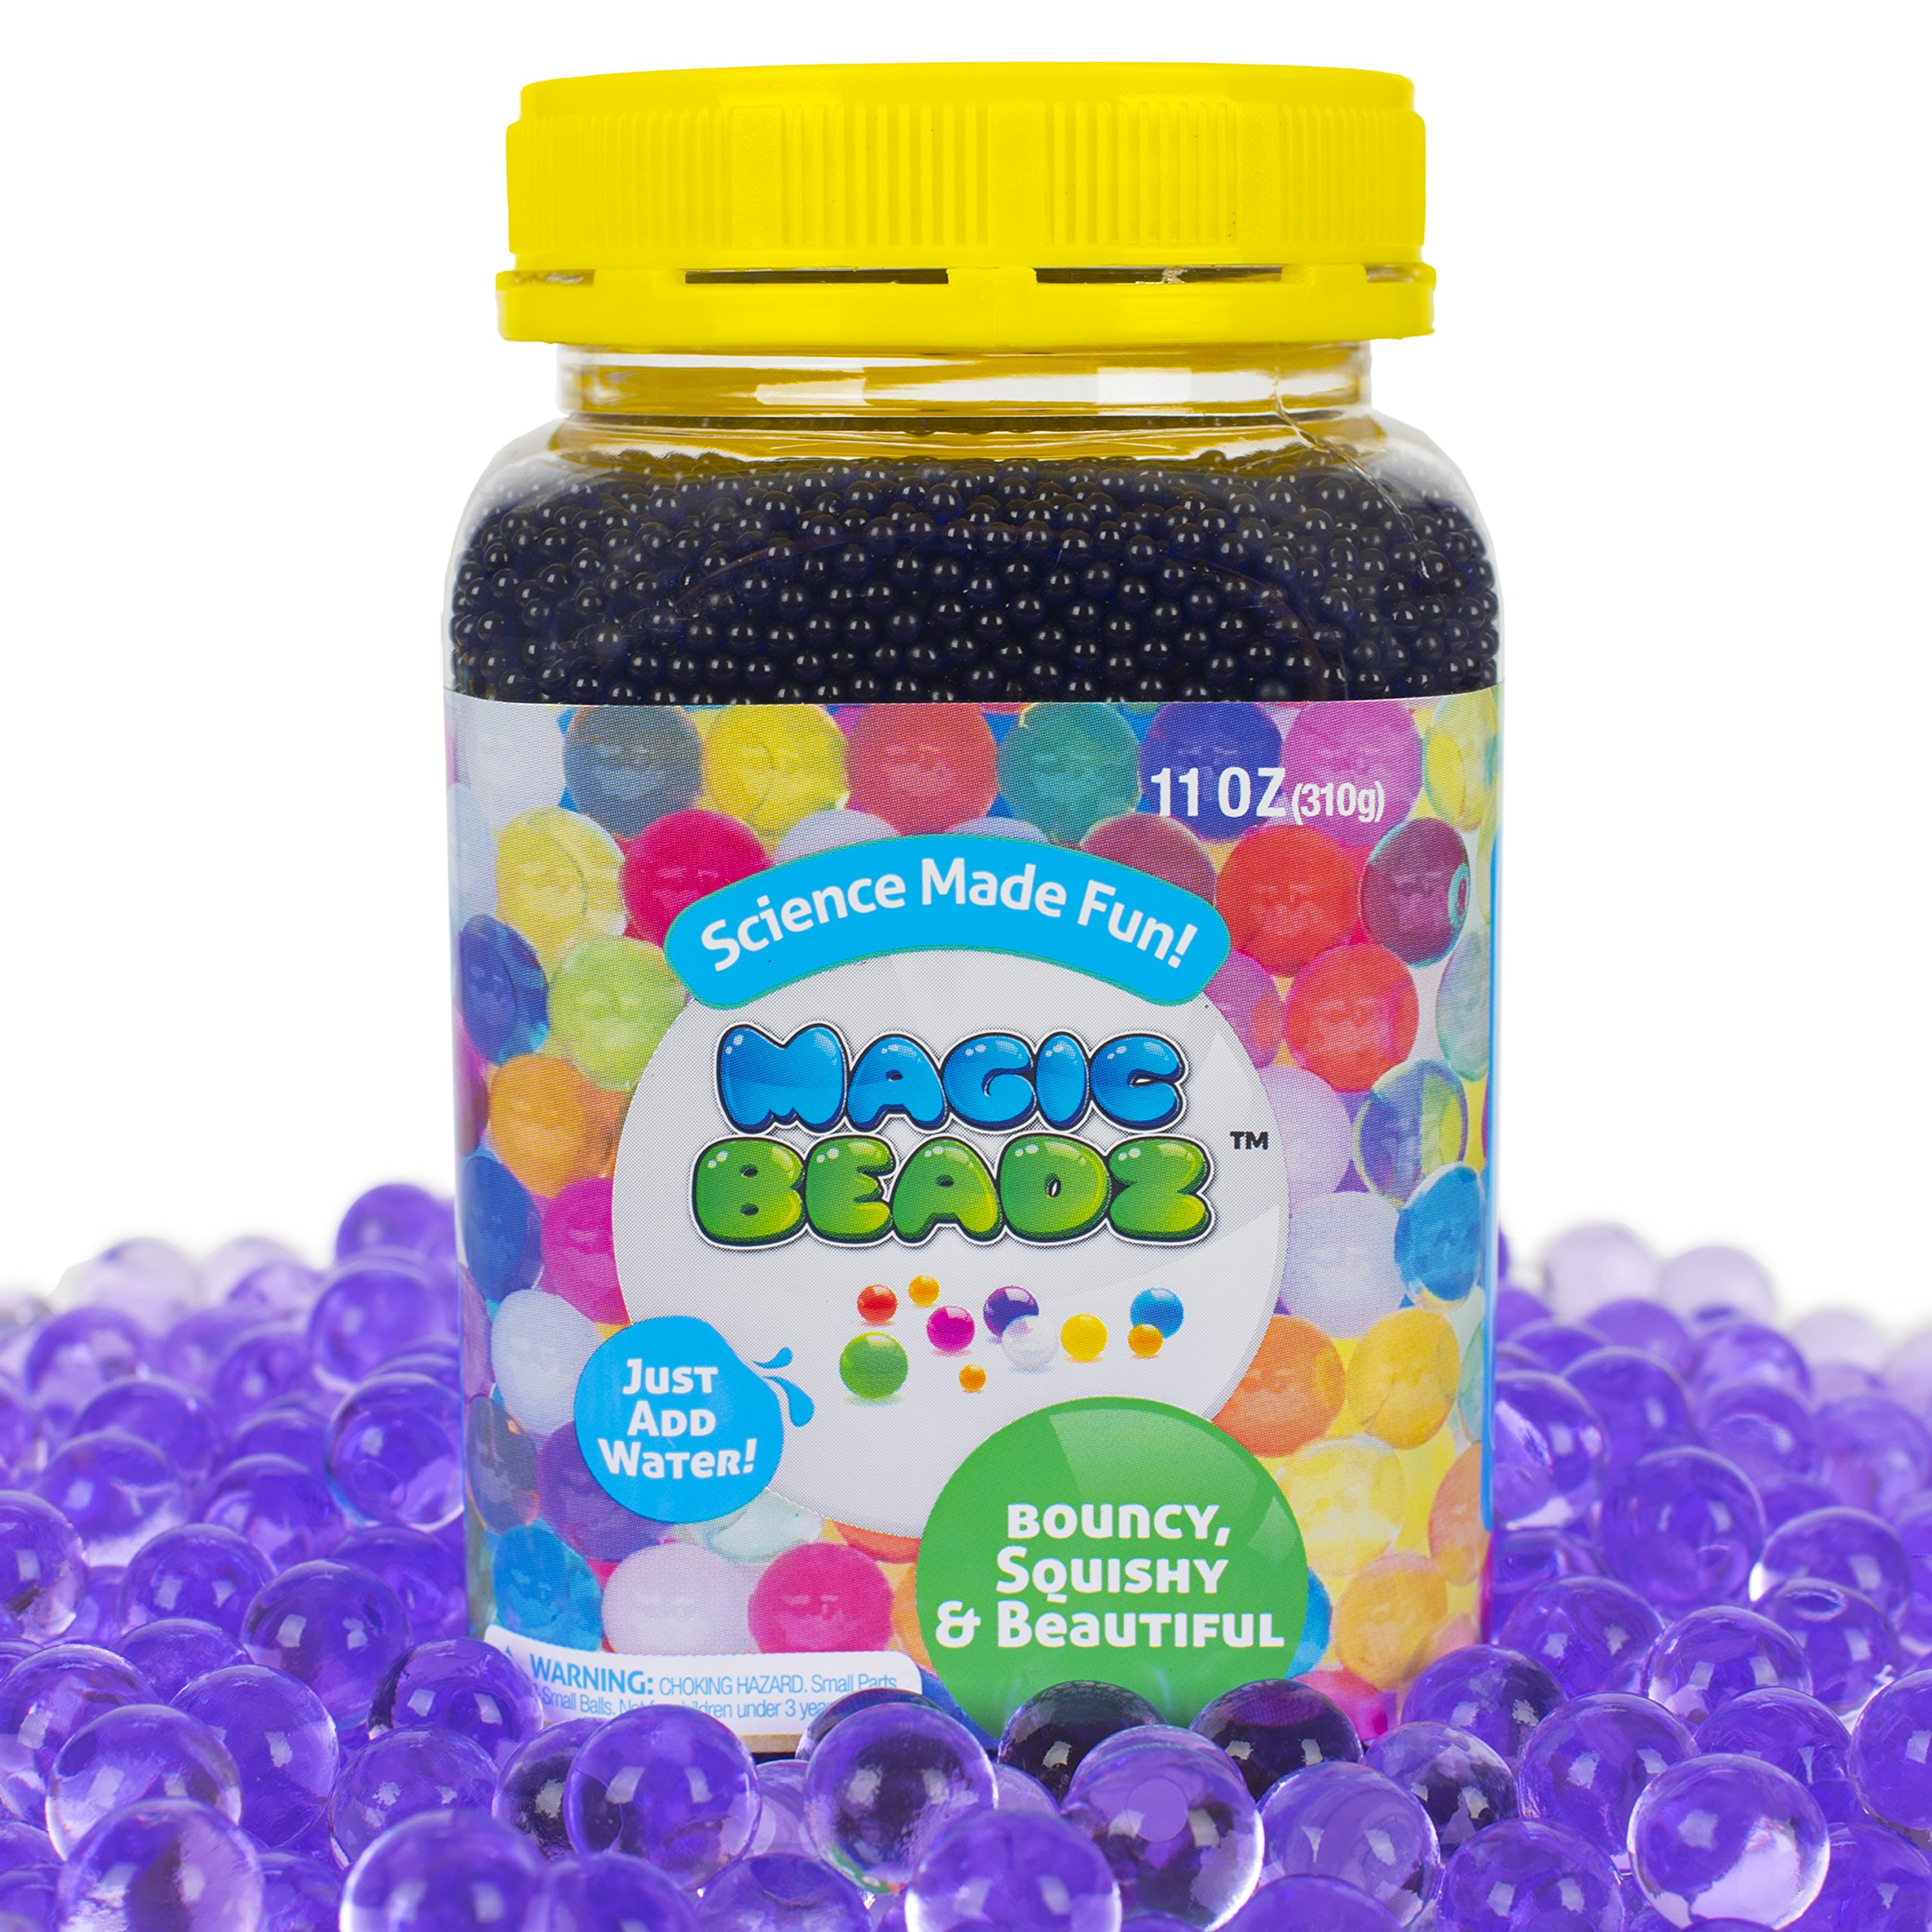 Magic Beadz Purple Gel Water Beads - Transparent Jelly Pearls - Vase Filler - Wedding Centerpiece - Candles - Flower Arrangements - Over 30,000 Beads - 11oz Jar Makes Over Ten Gallons